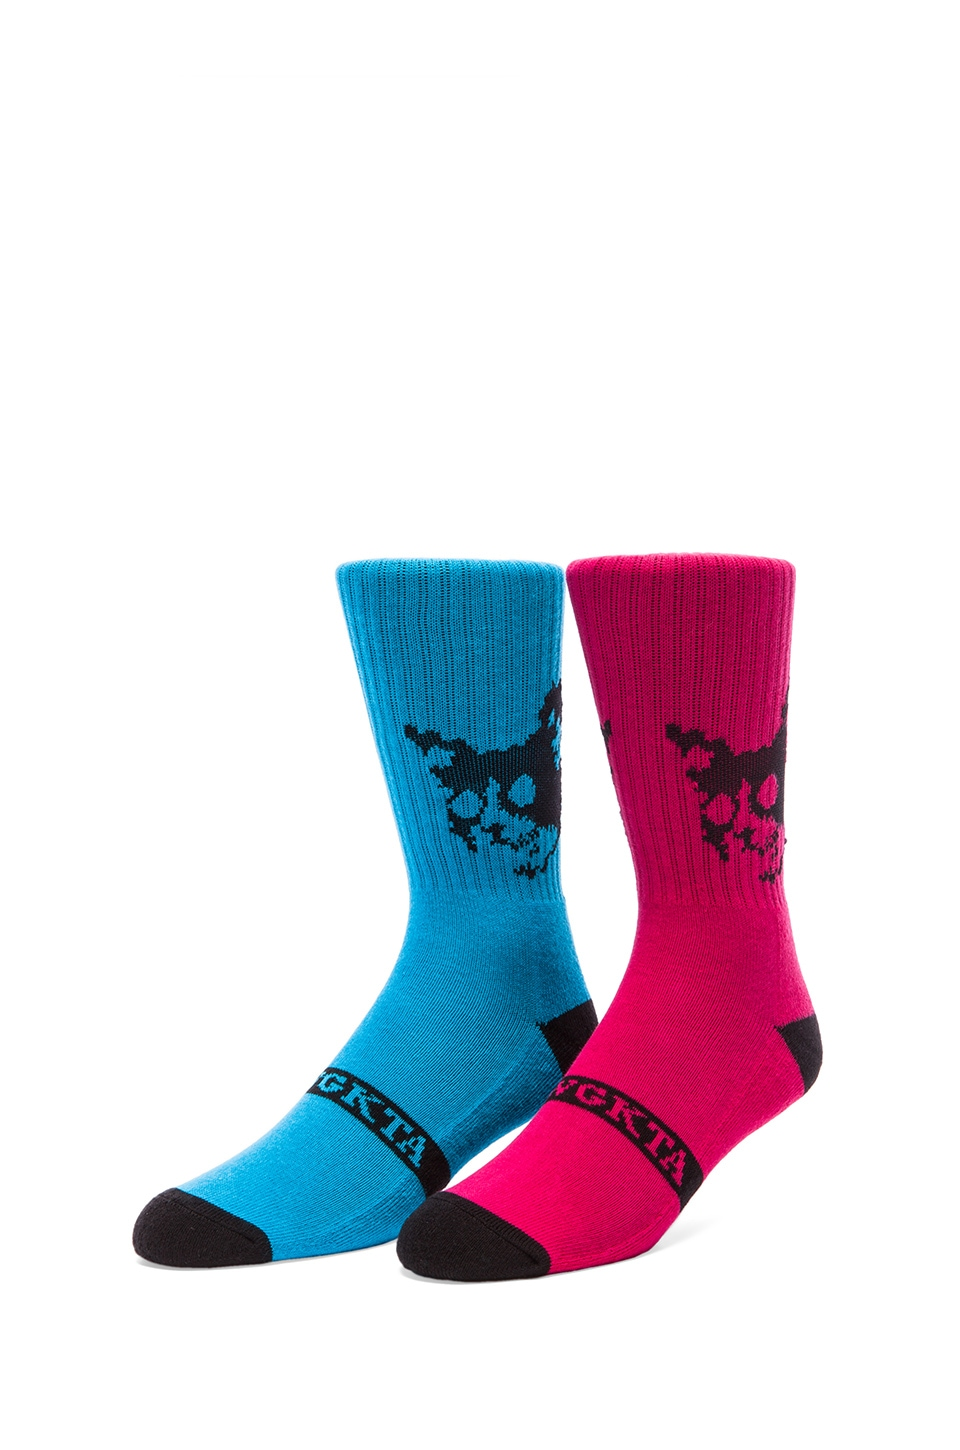 Odd Future Kill Cat OFWGKTA Sock in Blue, Kill Cat OFWGKTA Sock in Red